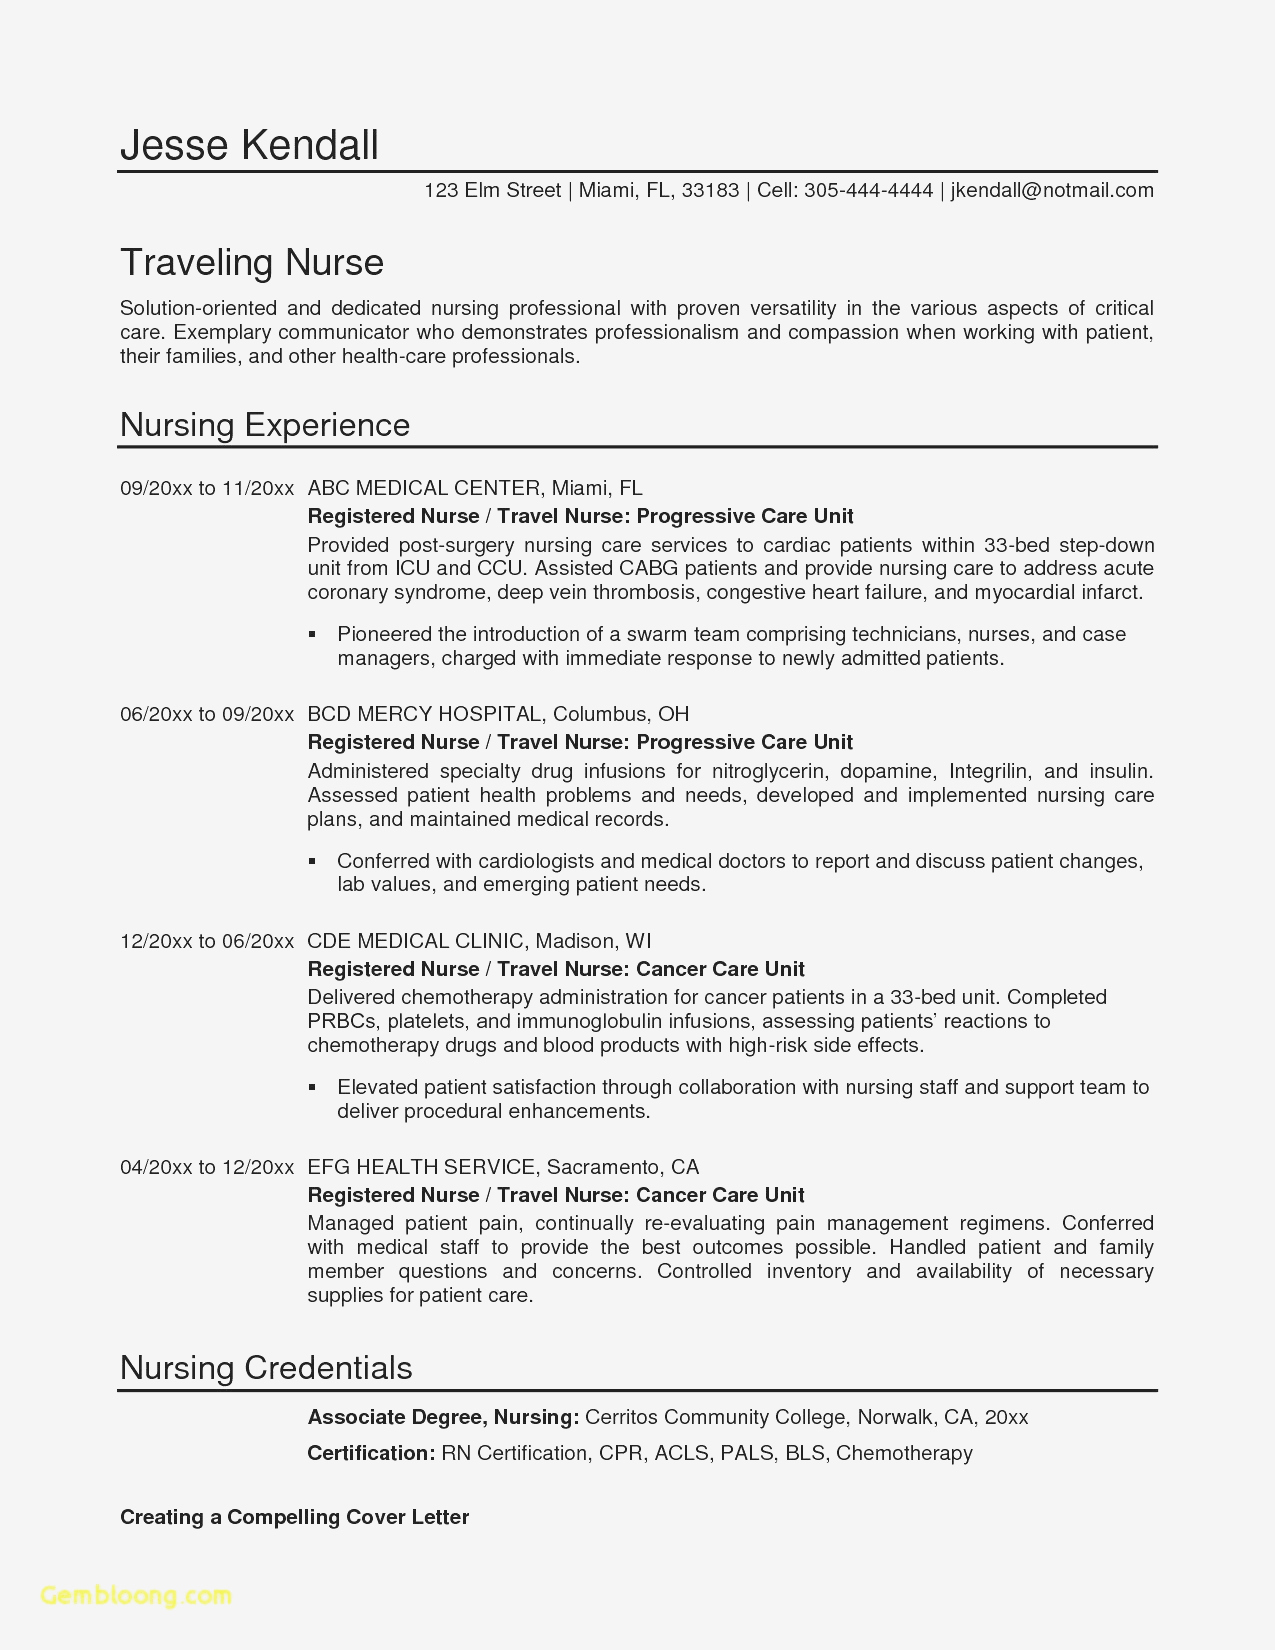 009 Free Printable Cover Letter Templates Resumeft Word Best Awesome - Free Printable Cover Letter Templates